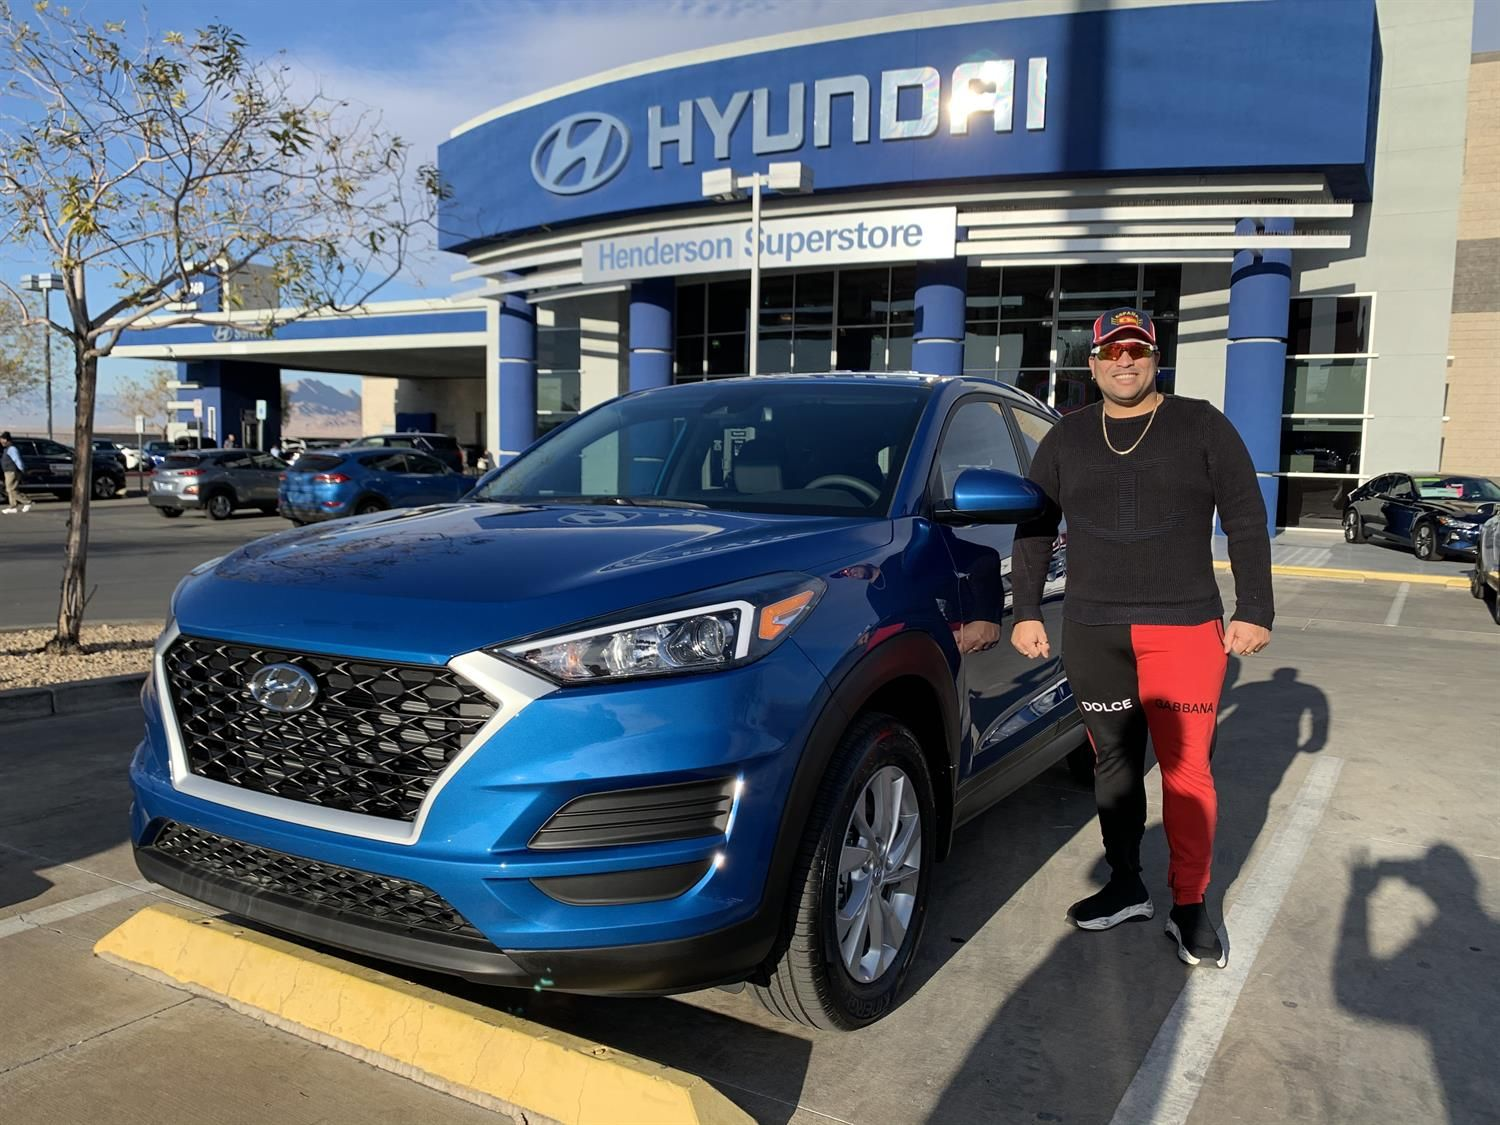 Zuyin And Ariel We Hope That Your New 2020 Hyundai Tucson Takes You On Amazing Journeys Near And Far Enjoy Your New Ve New Hyundai Hyundai Hyundai Dealership